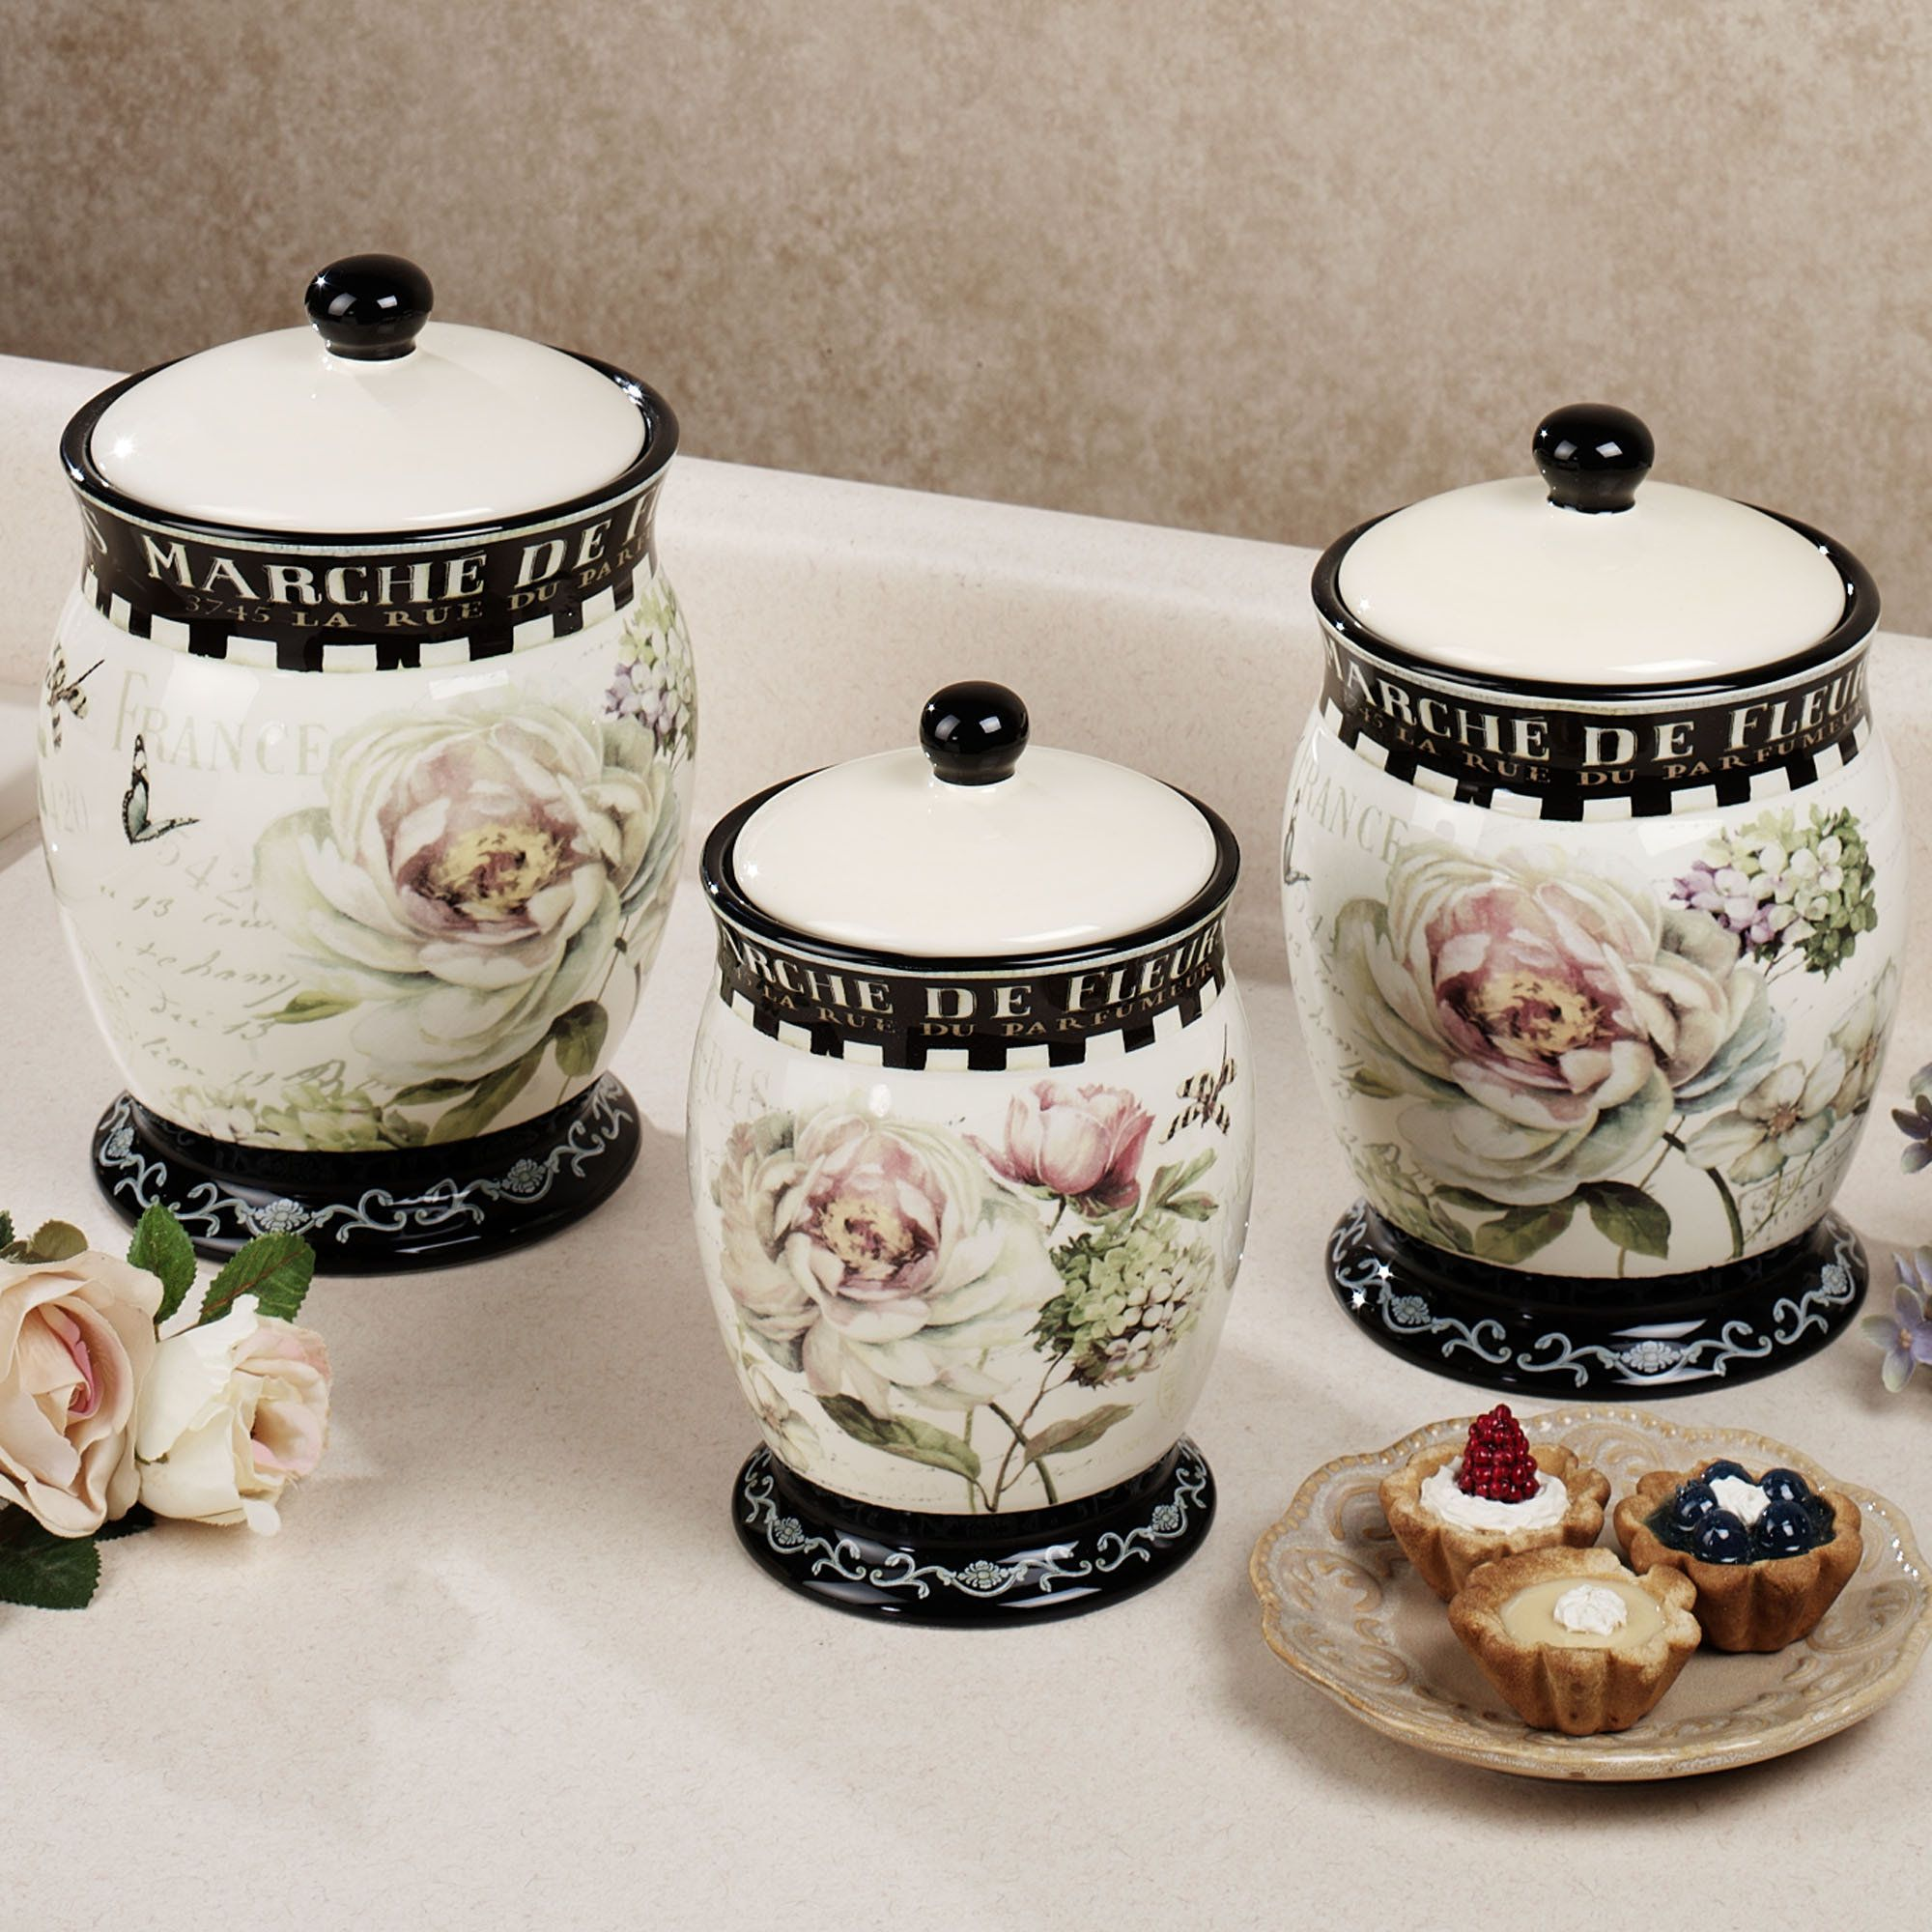 elegant kitchen canisters marche de fleurs kitchen canister set kitchen canisters canister sets 1413